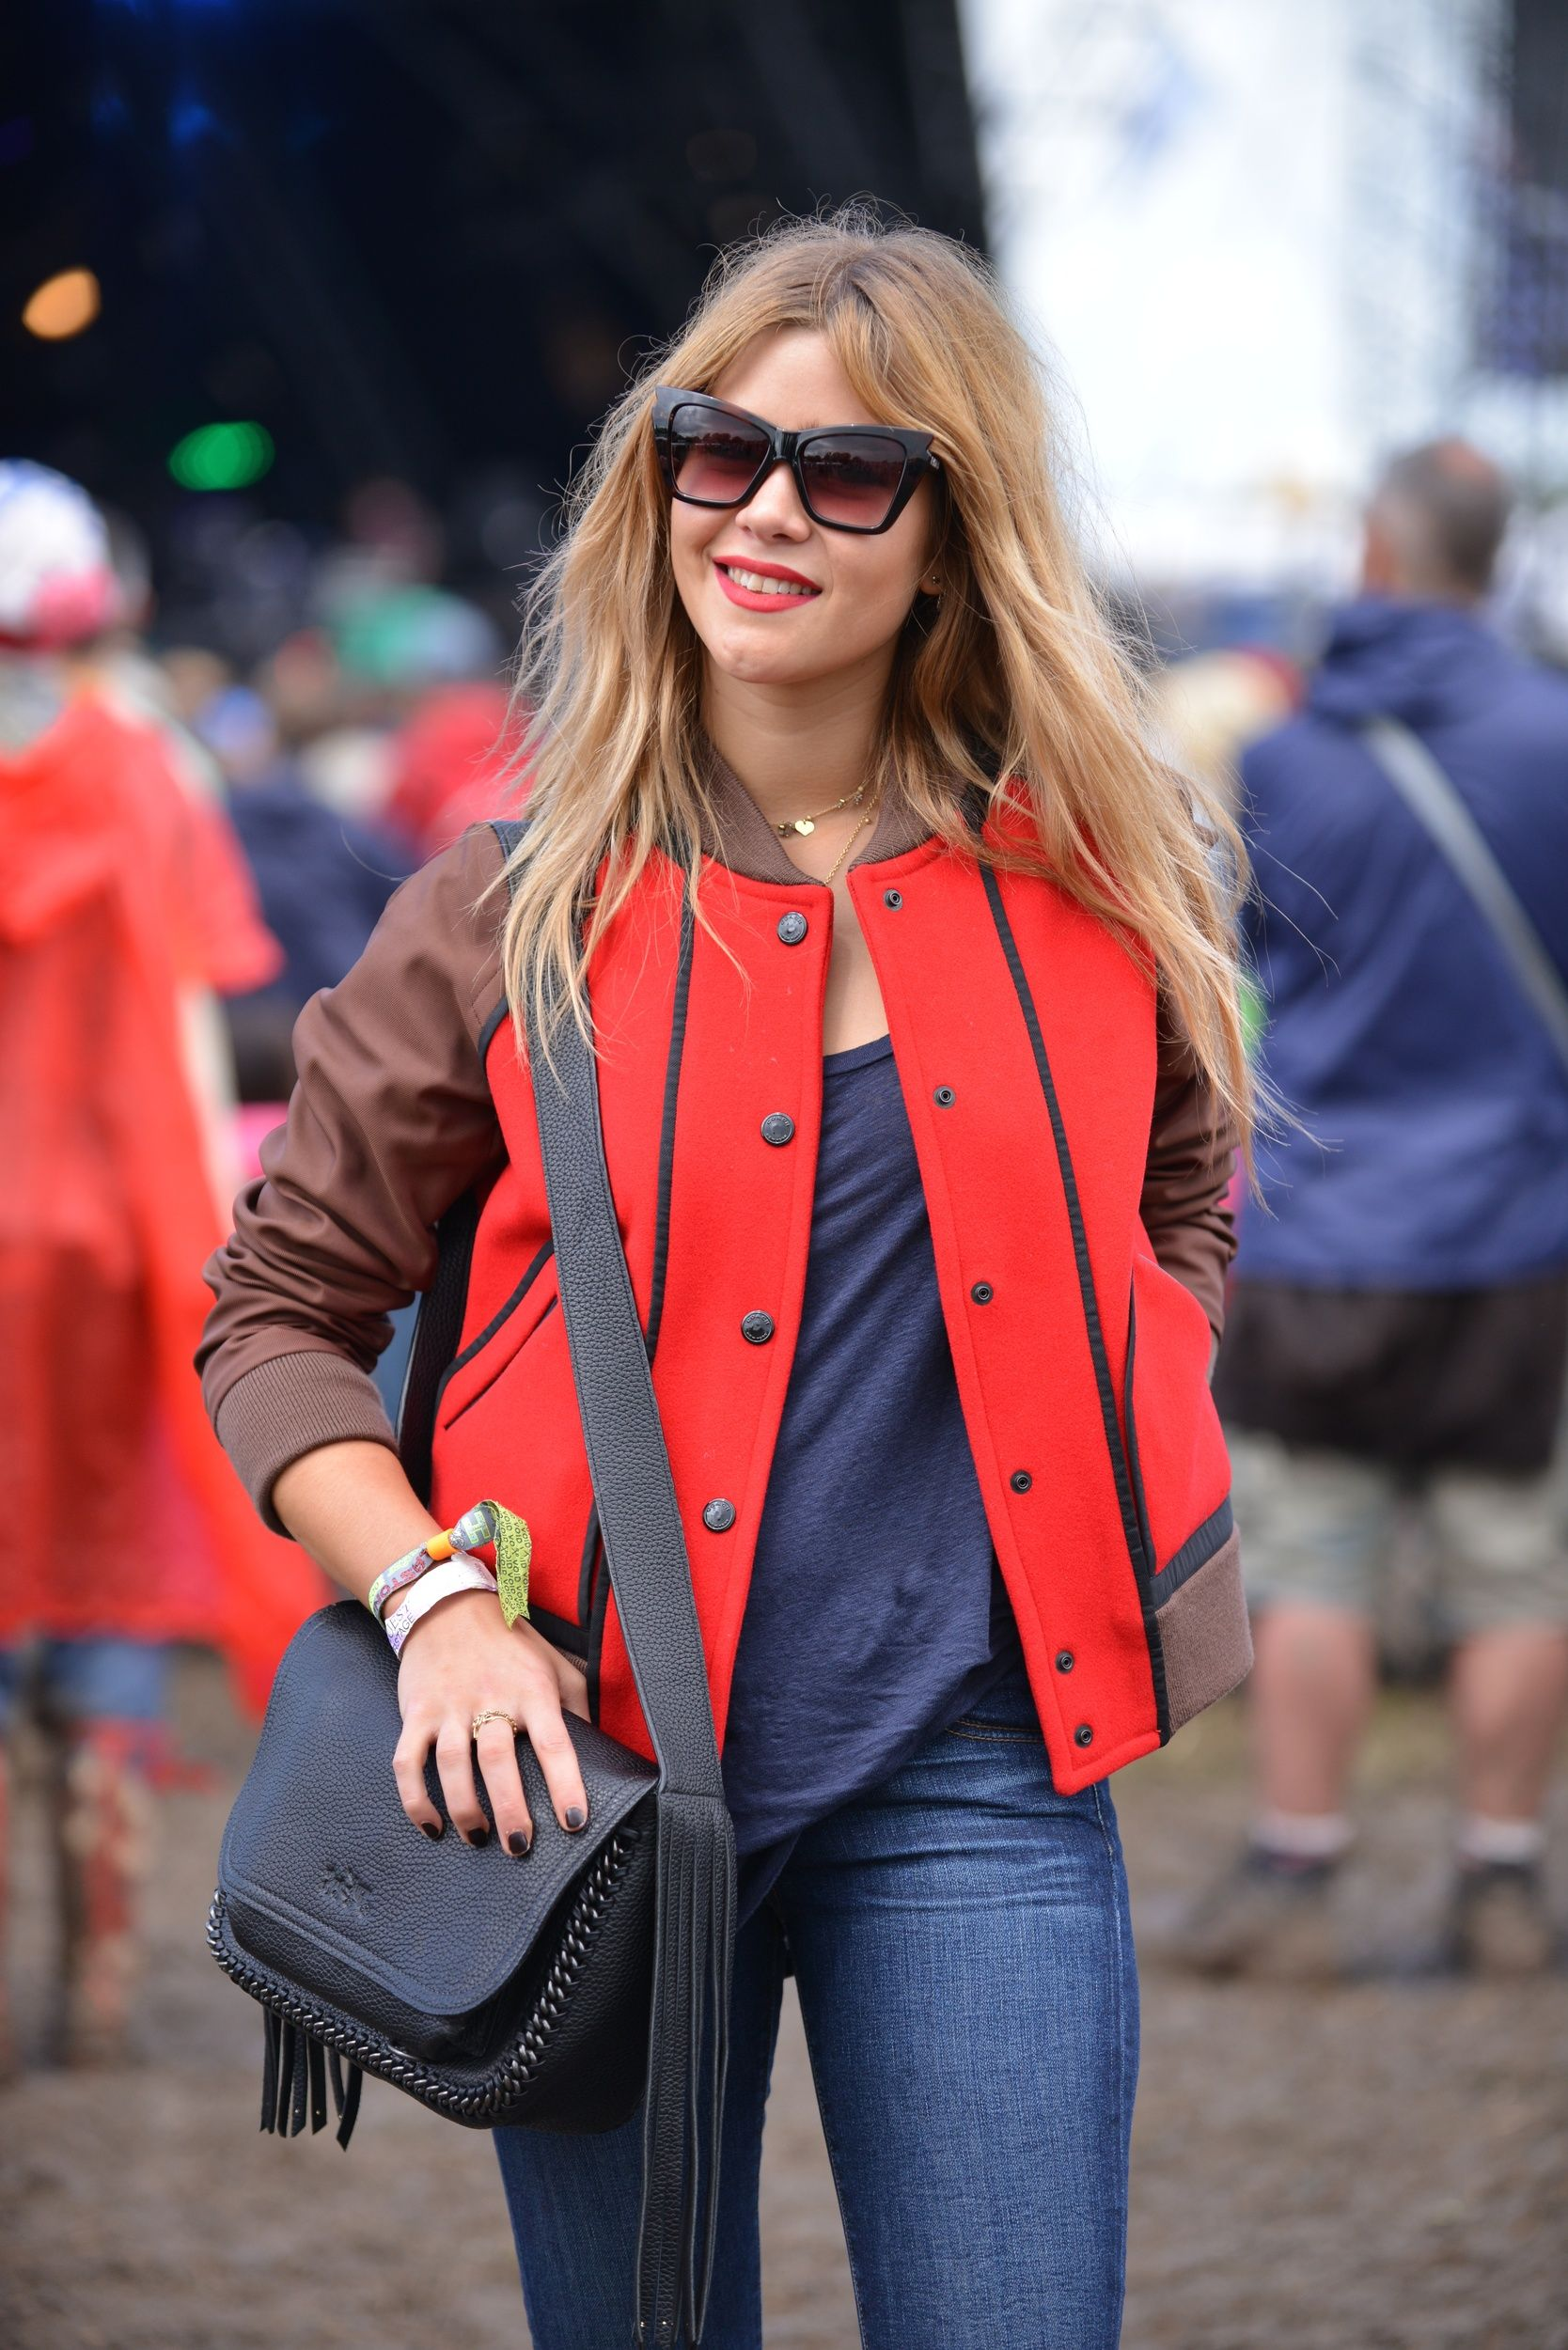 6d0f8d42d Jazzy de Lisser at Glastonbury wearing Le Specs 'Rapture' sunglasses ...